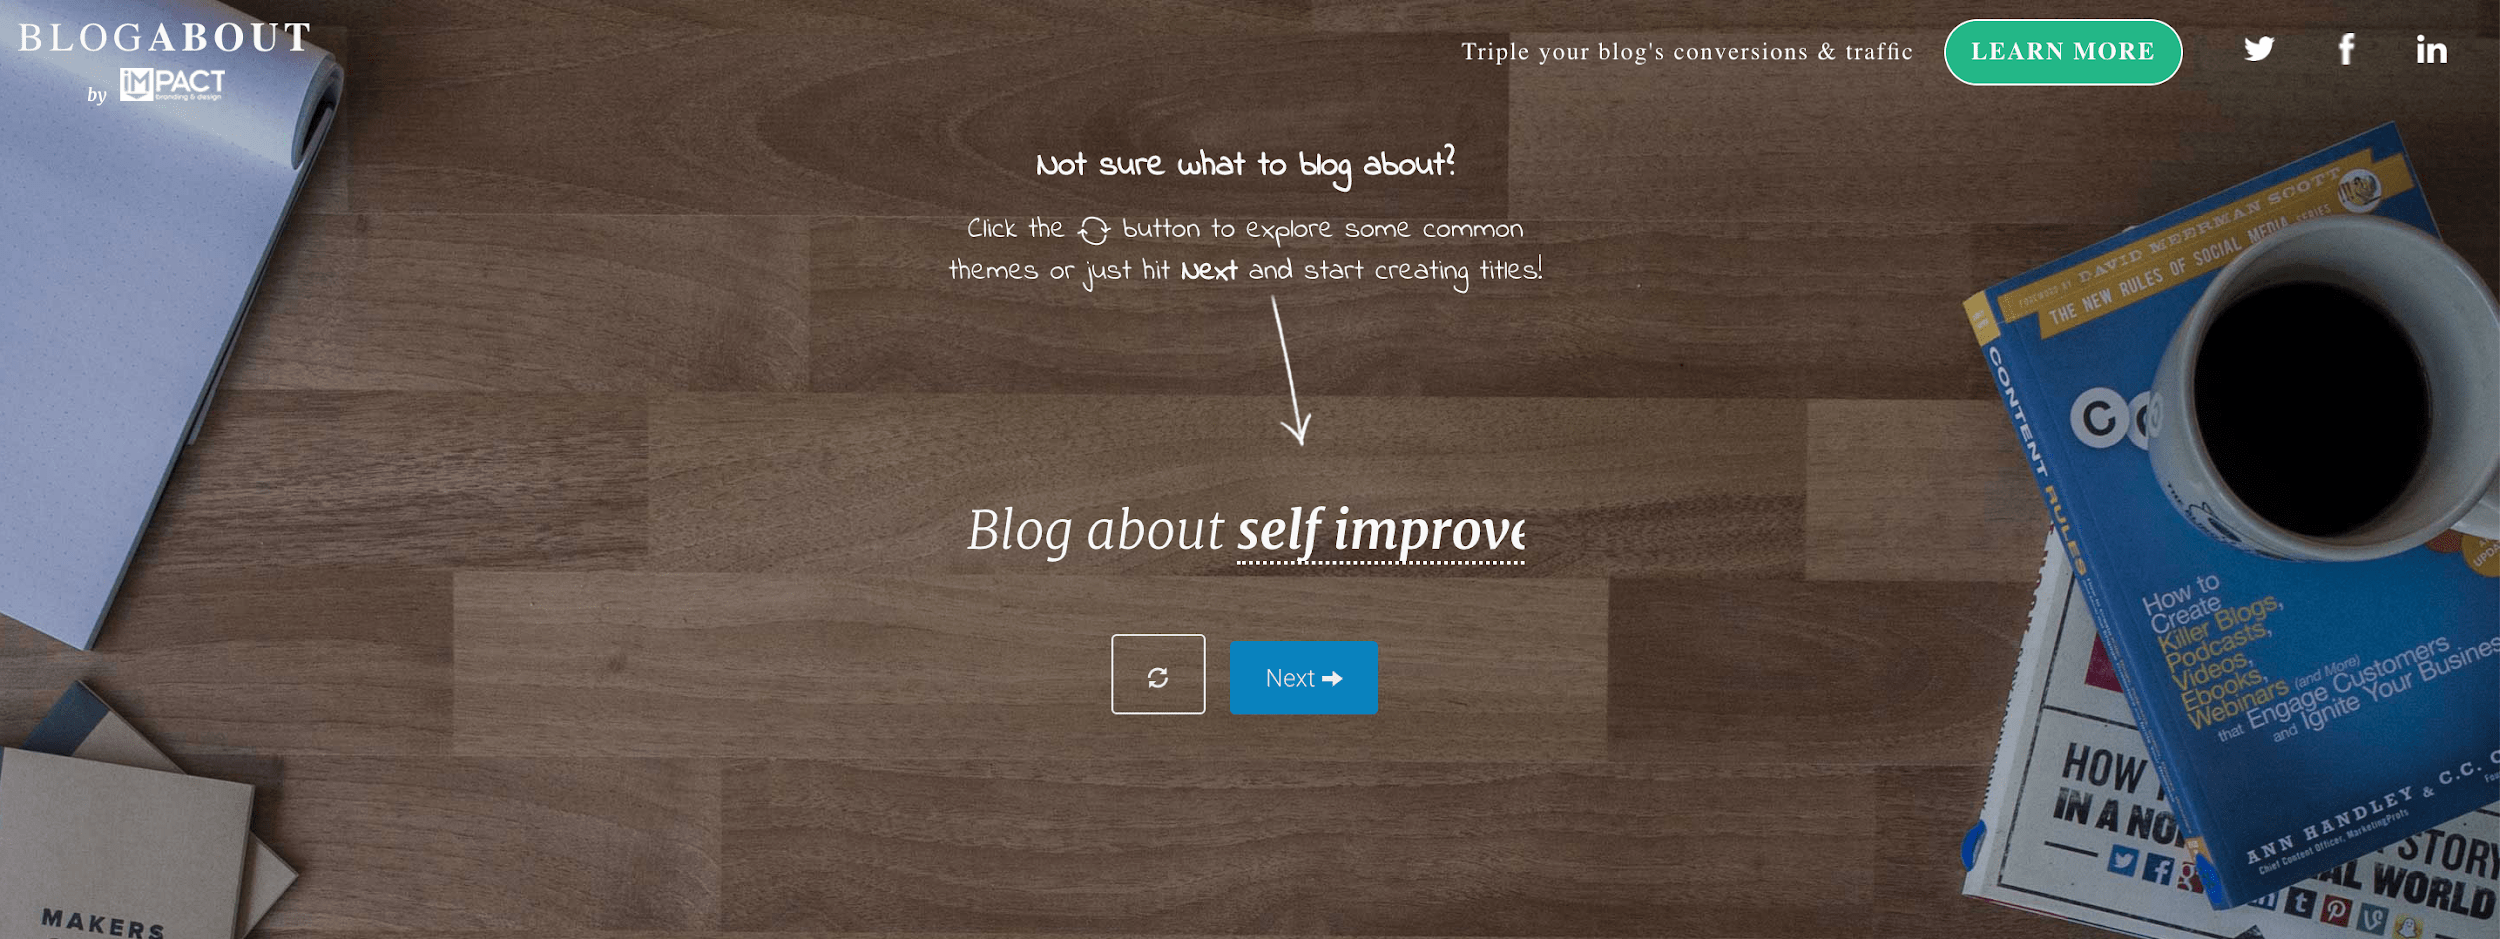 5-Free-Tools-to-Improve-Your-Blog-image13